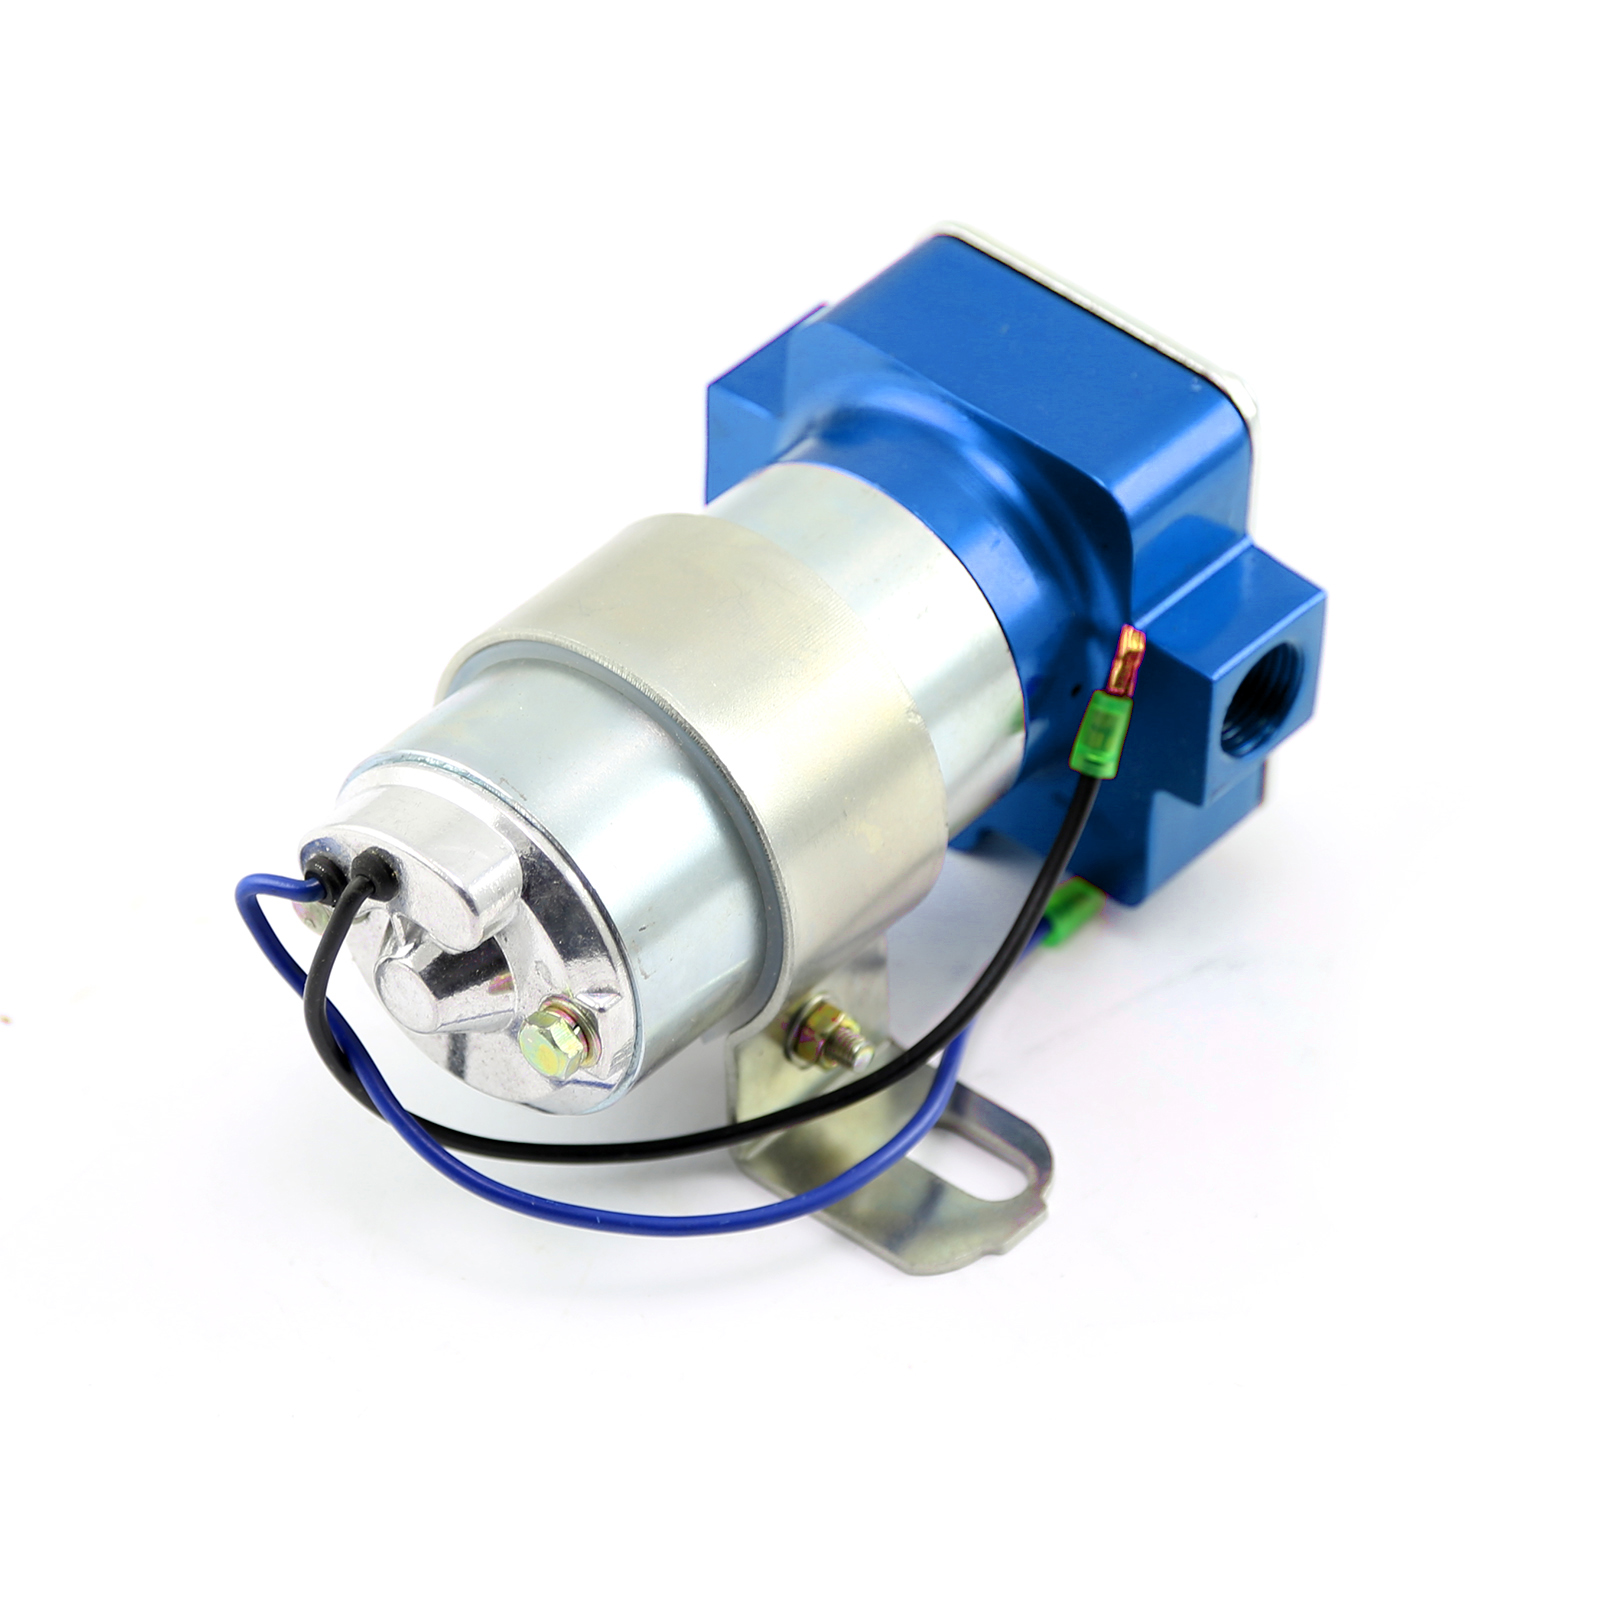 140 Gph @ 14 PSI Blue Billet Universal Electric Fuel Pump